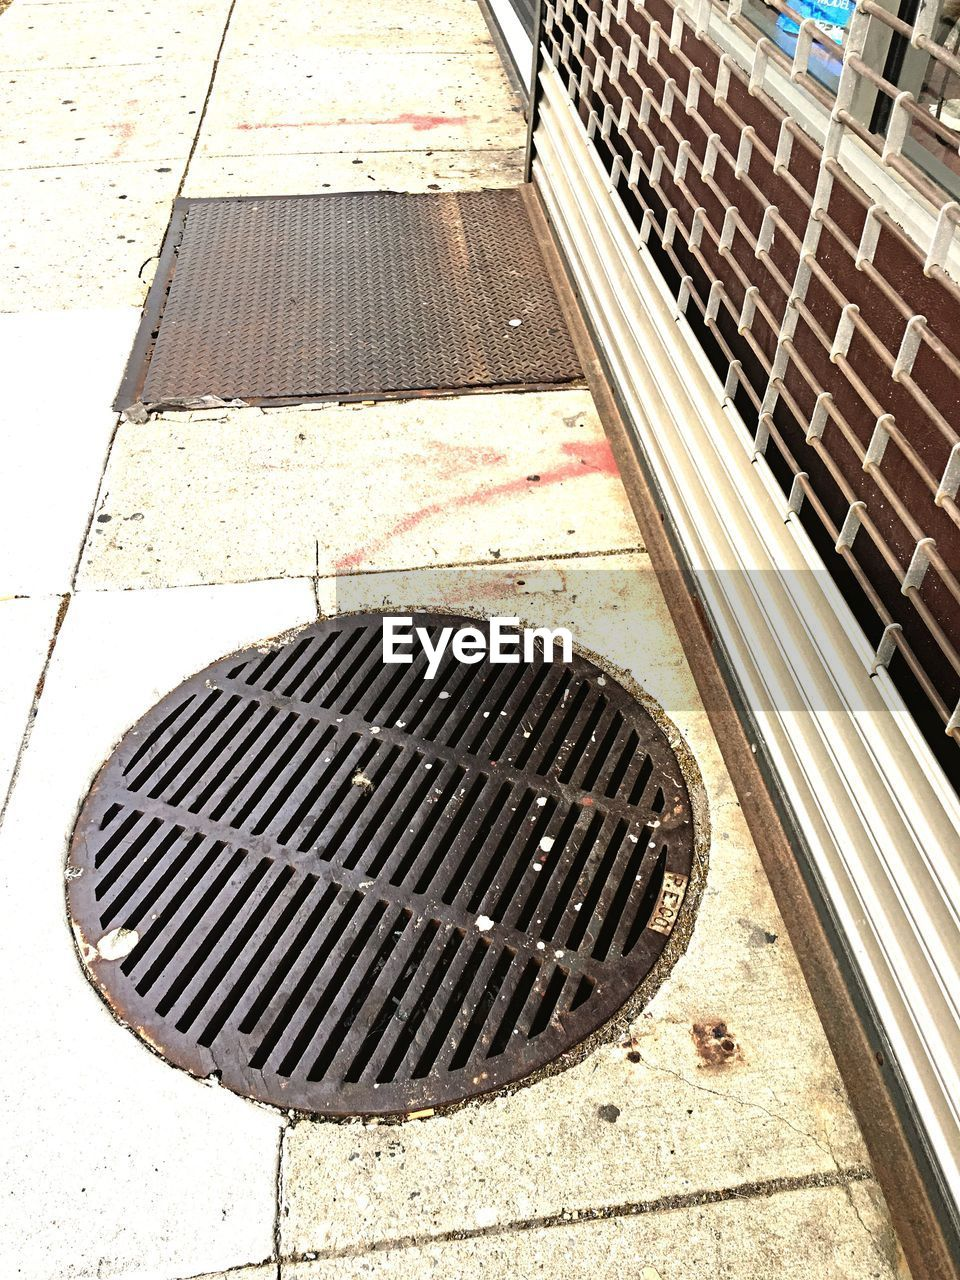 sewer, sewage, manhole, gutter, drain, metal grate, high angle view, air duct, street, no people, day, outdoors, architecture